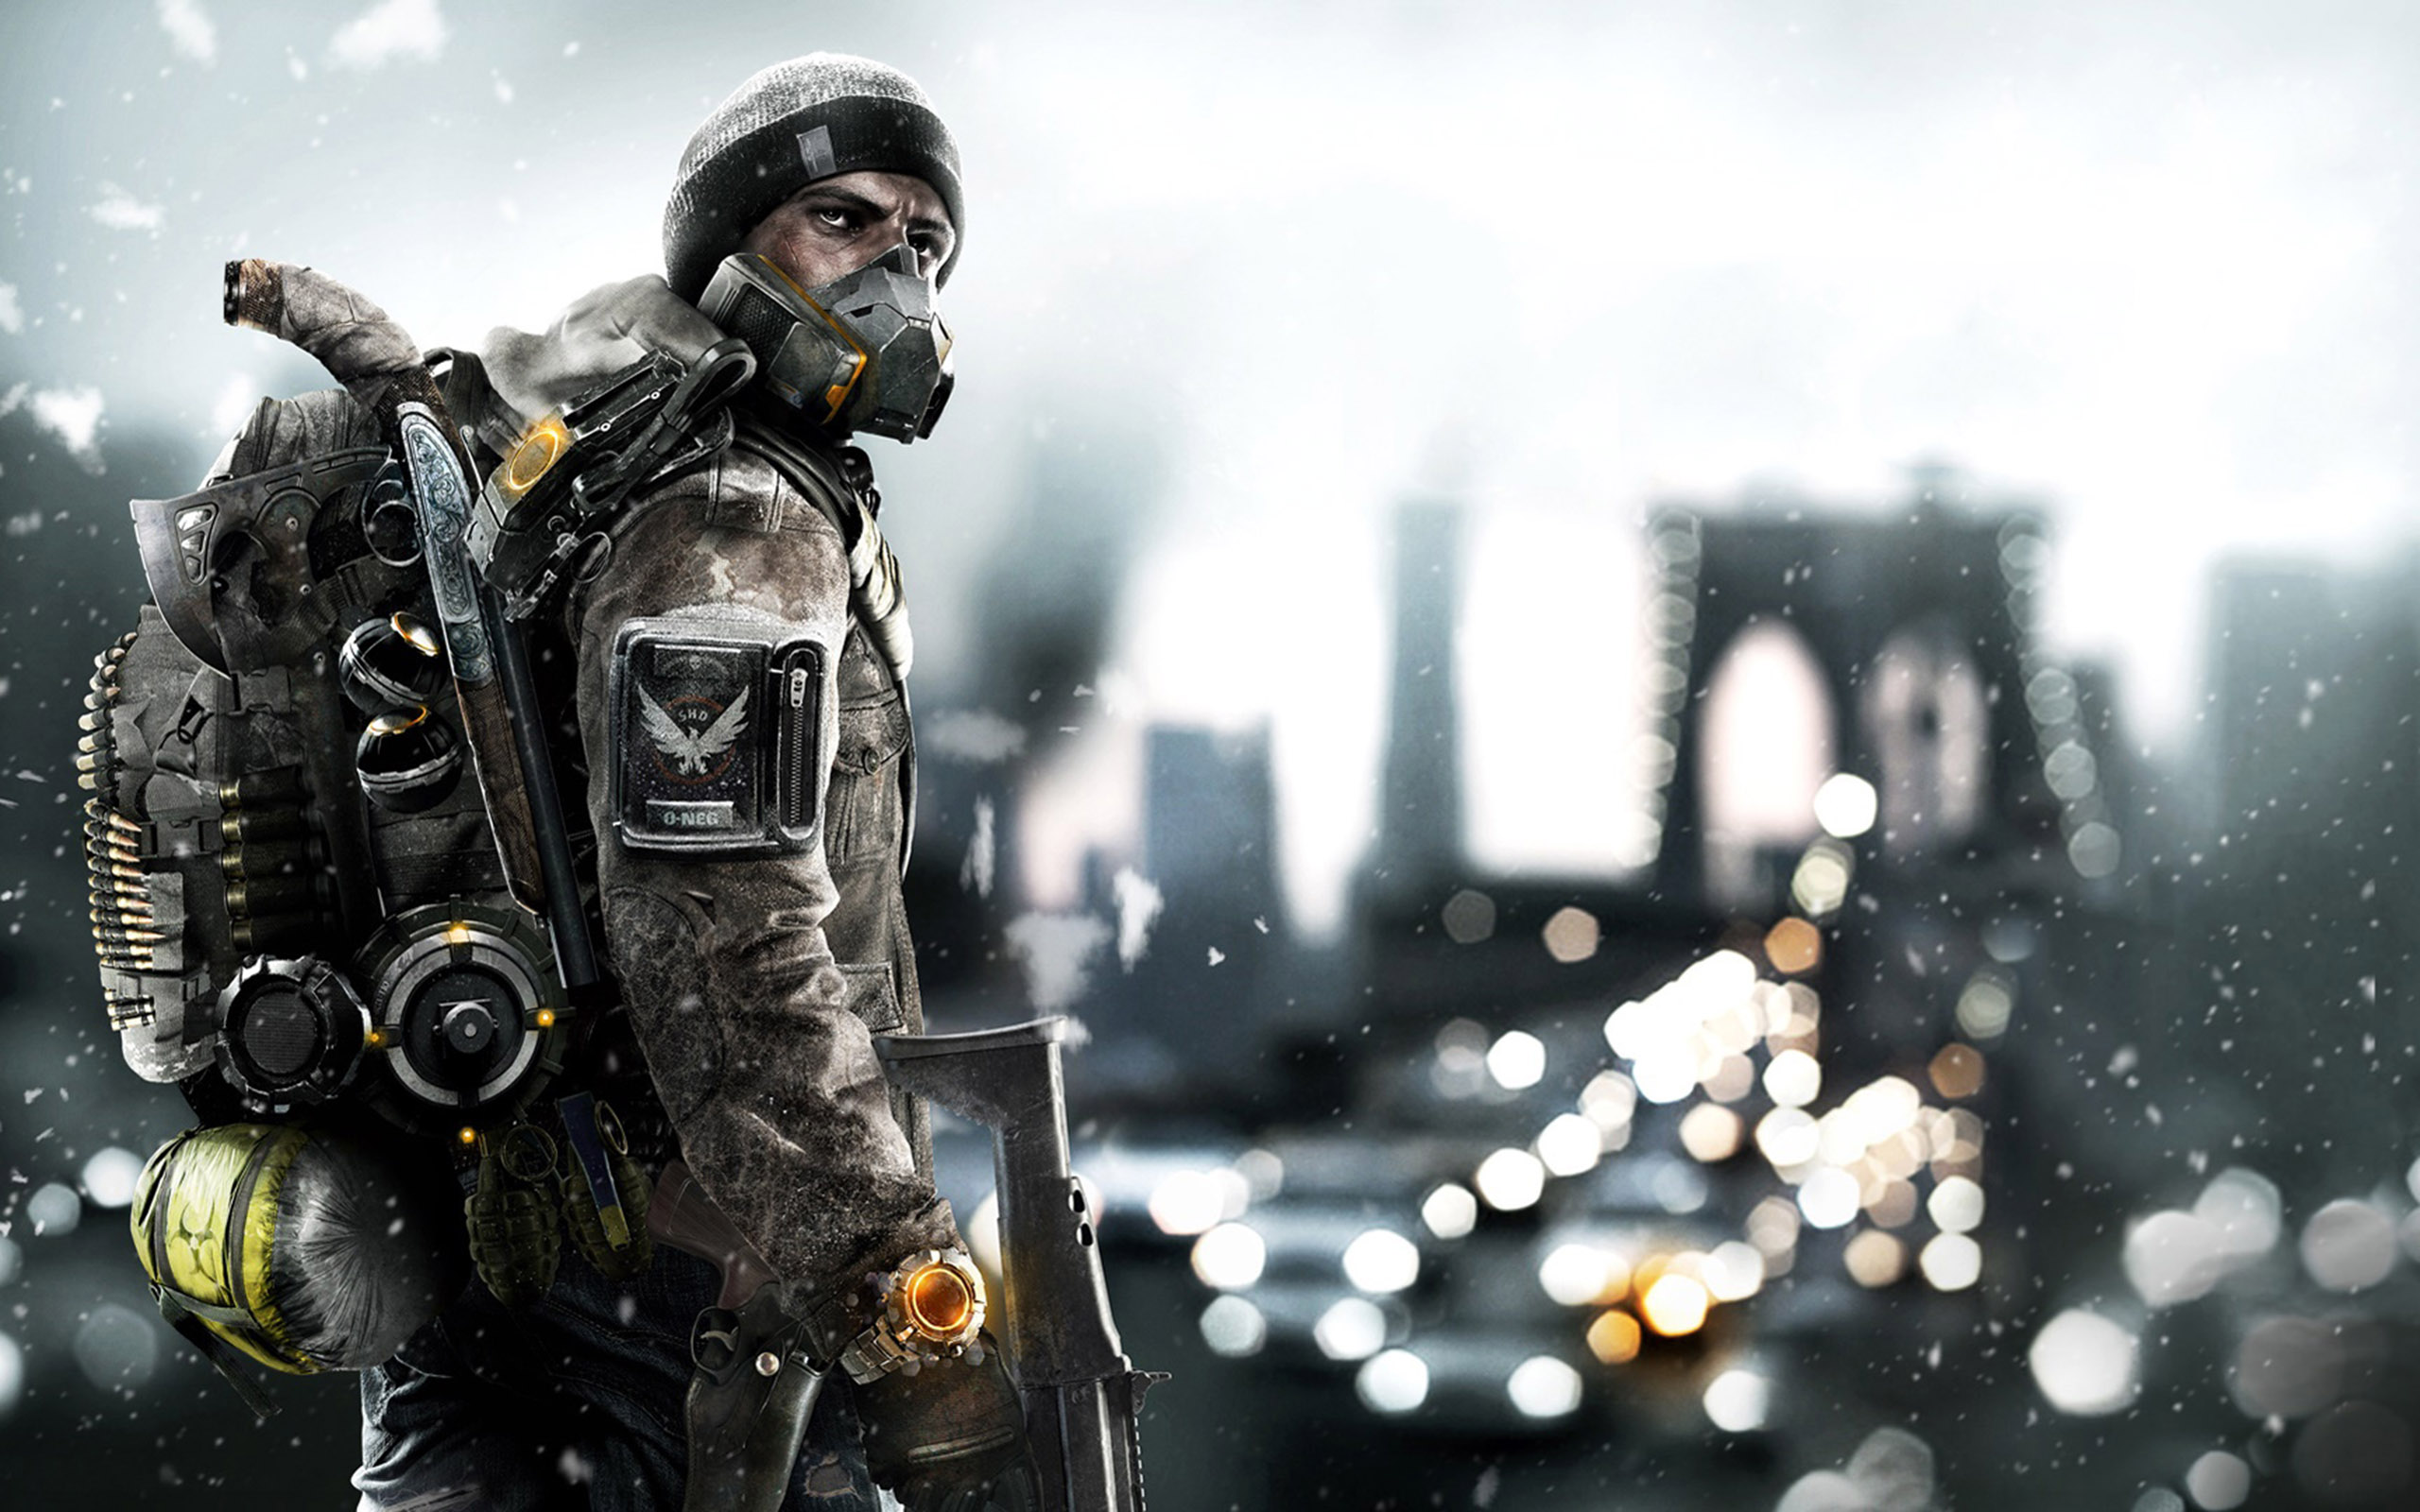 Tom Clancys The Division Season Pass Game Wallpaper 2560x1600